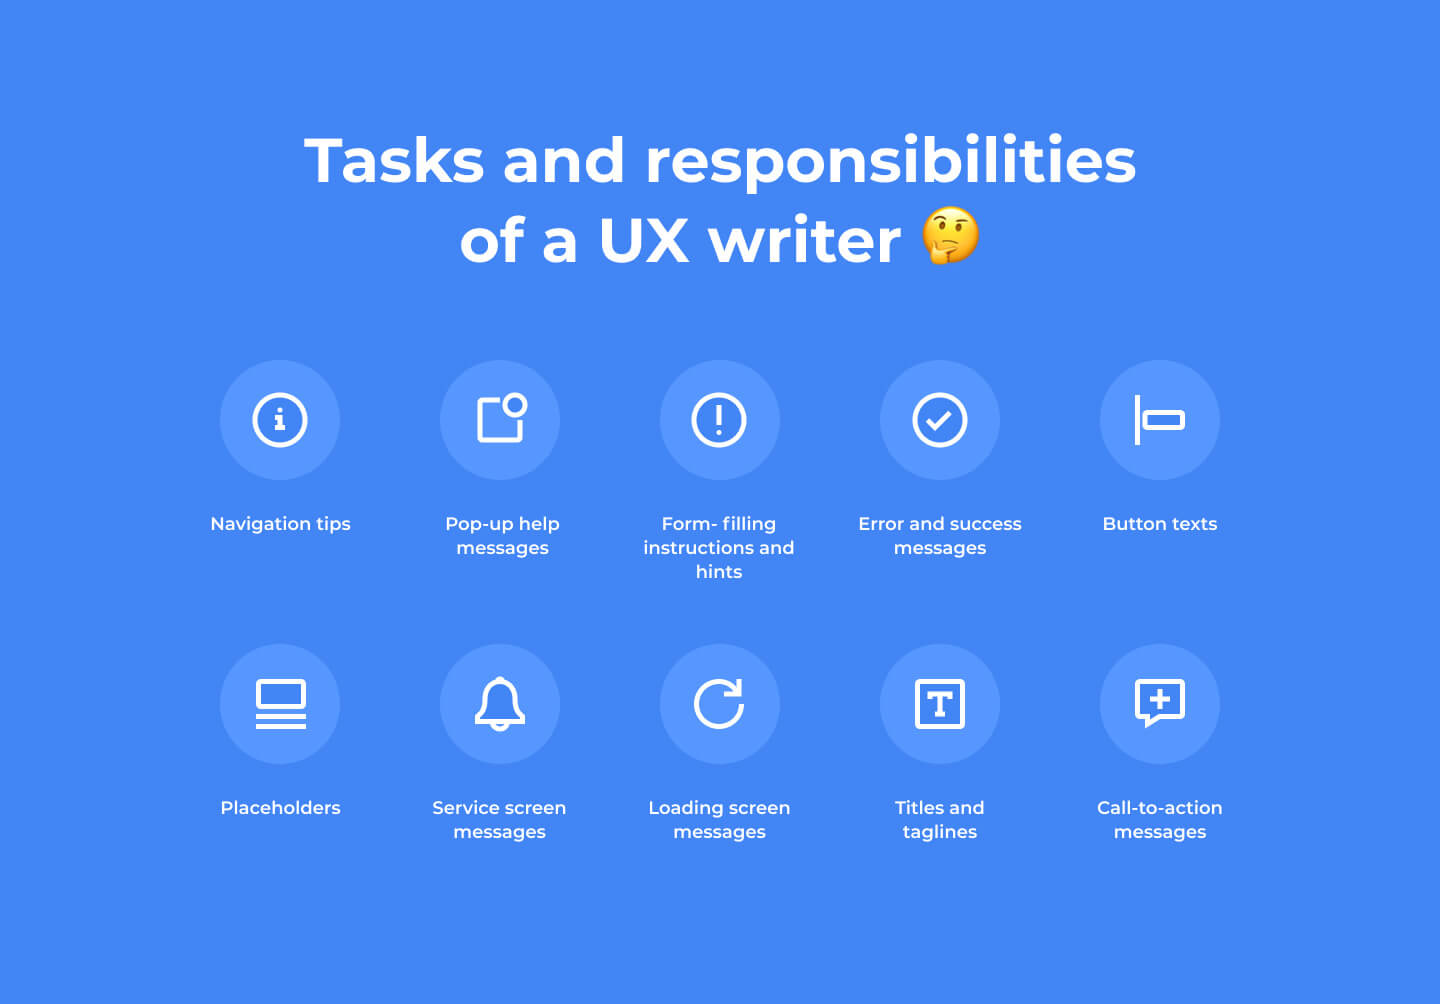 responsibilities of a UX writer